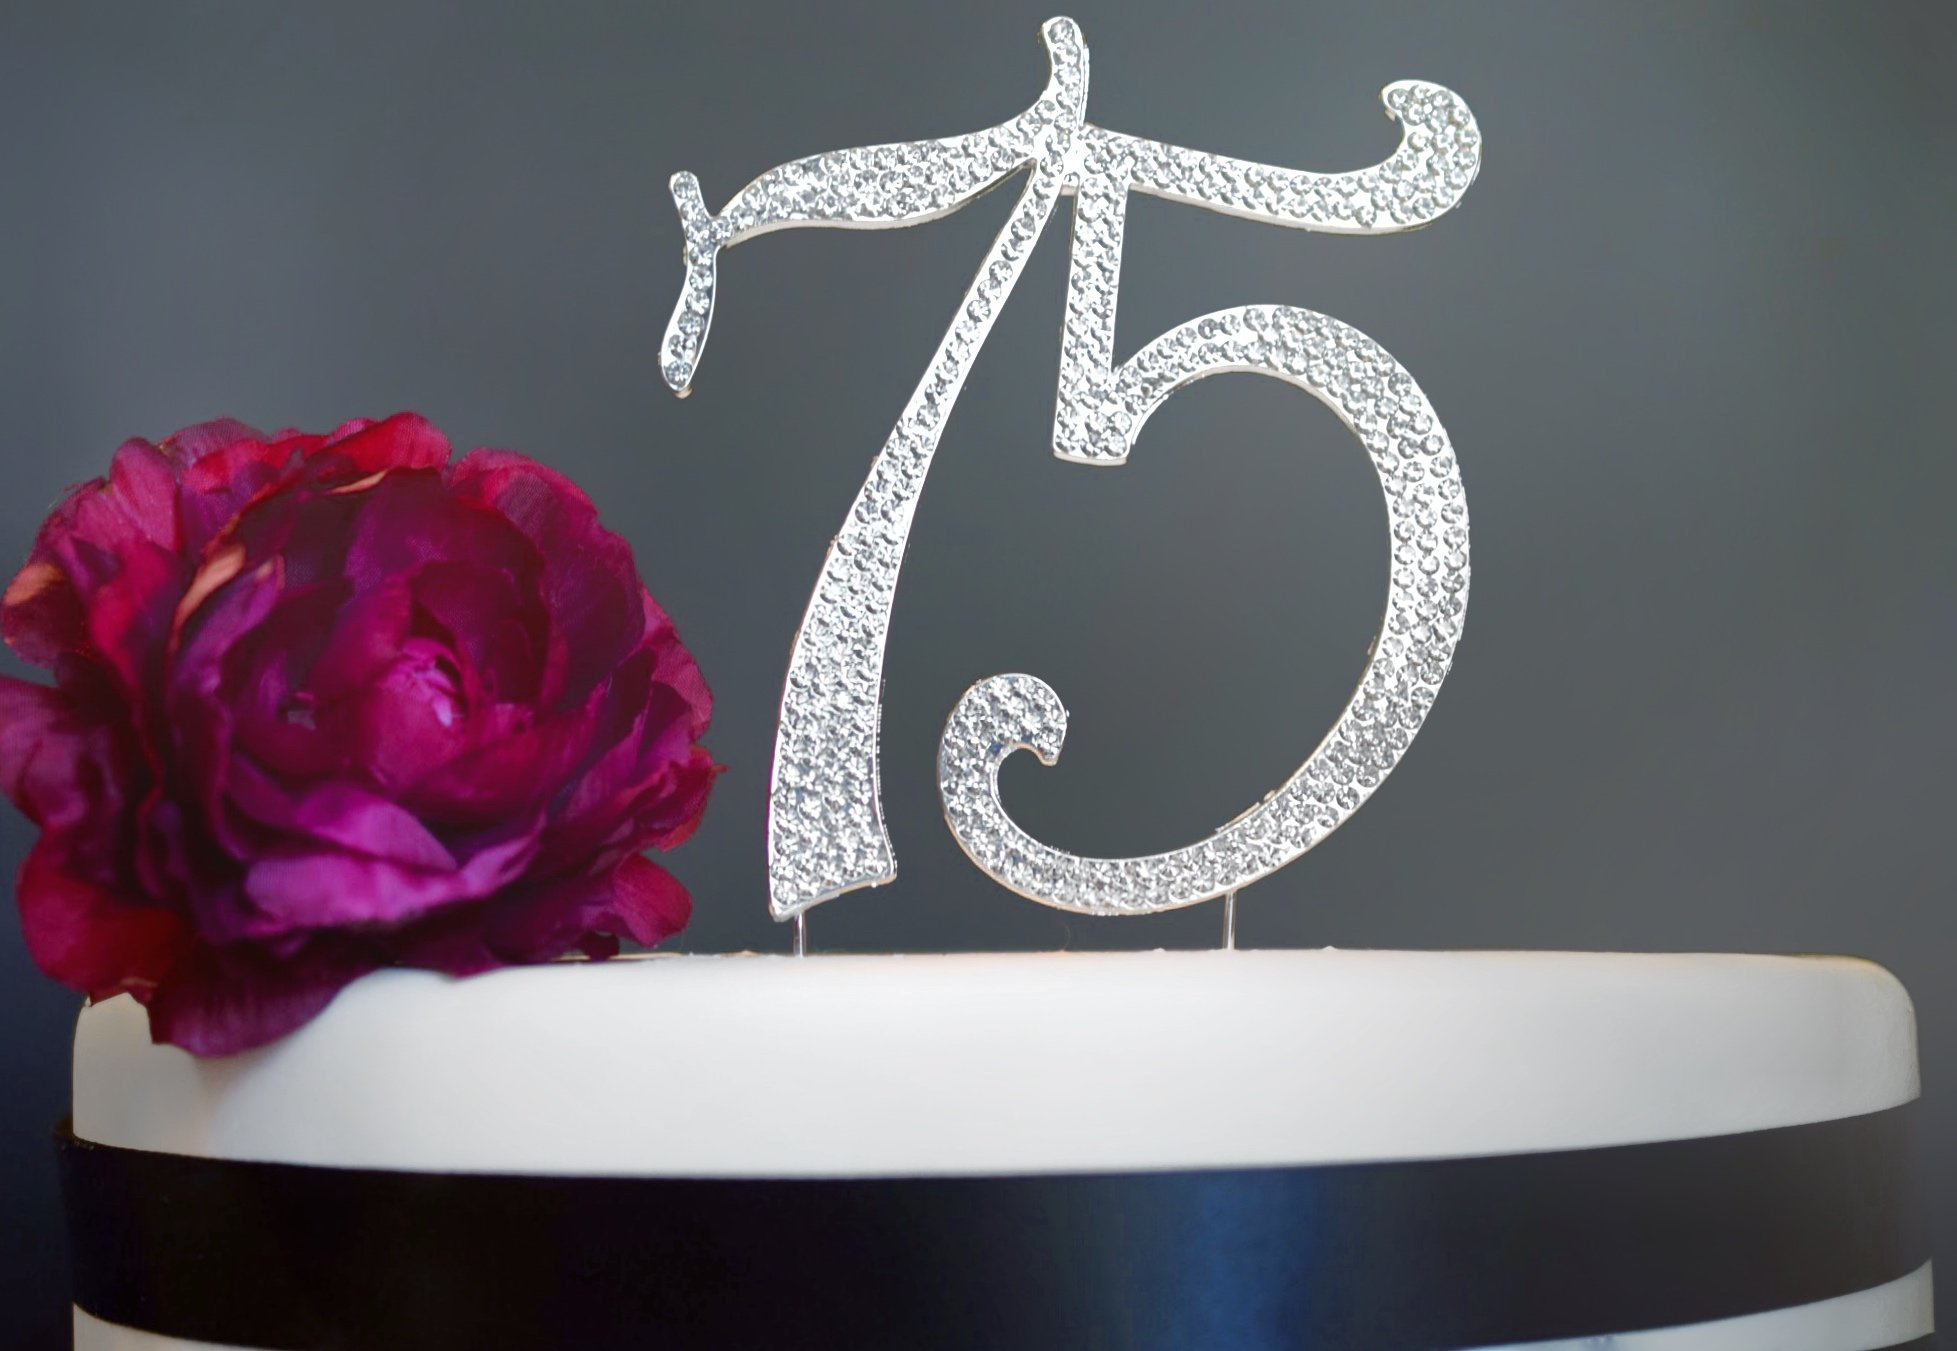 75 Rhinestone Birthday Cake Topper | Premium Sparkly Bling Crystal Rhinestone Diamond Gems | 75th Birthday or Anniversary Party Decoration Ideas | Perfect Keepsake (75 Silver) by Crystal Creations